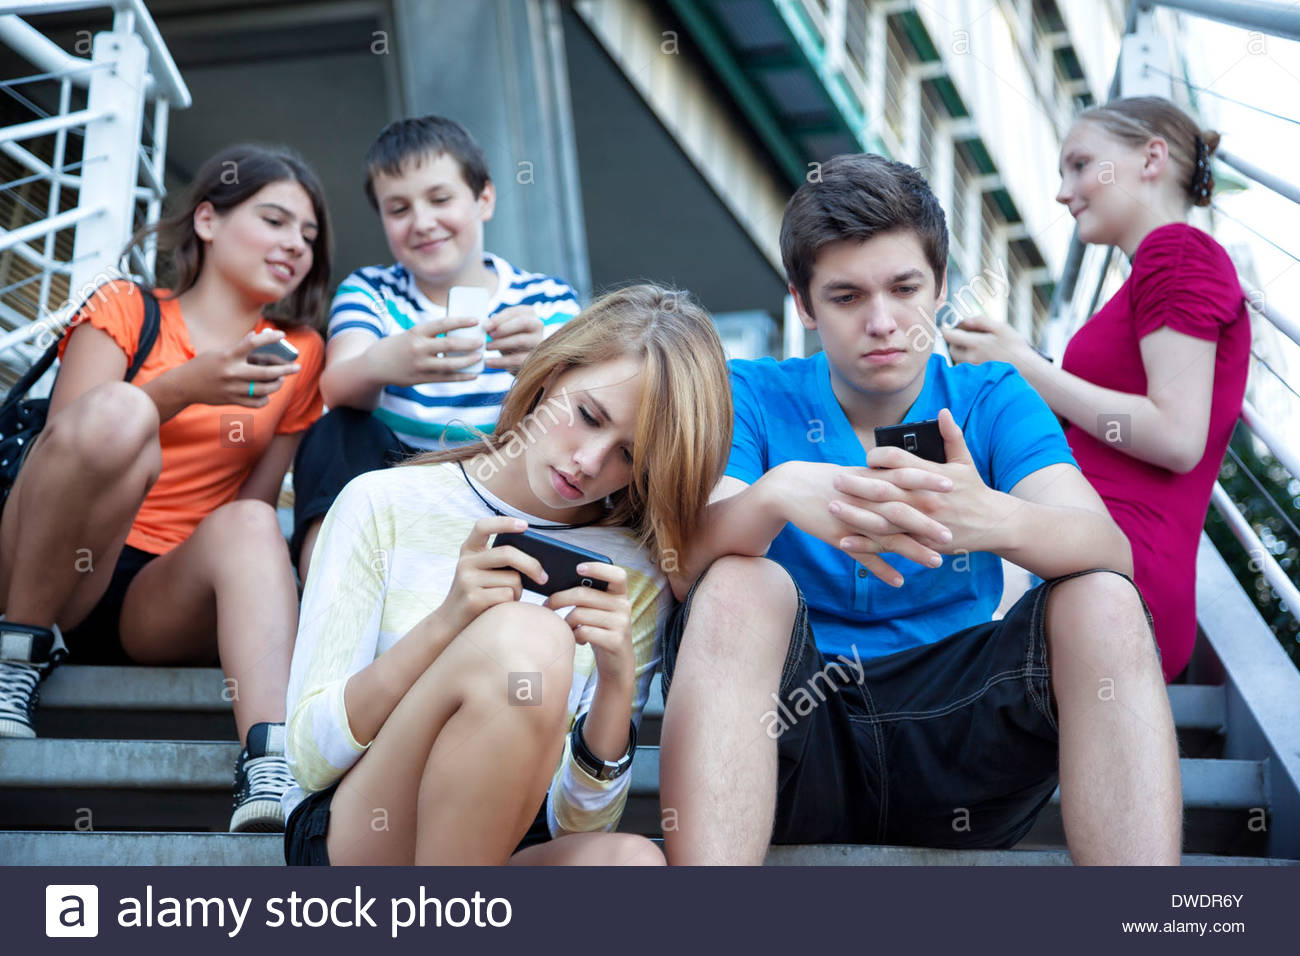 Teenage friends using mobile devices on stairs - Stock Image